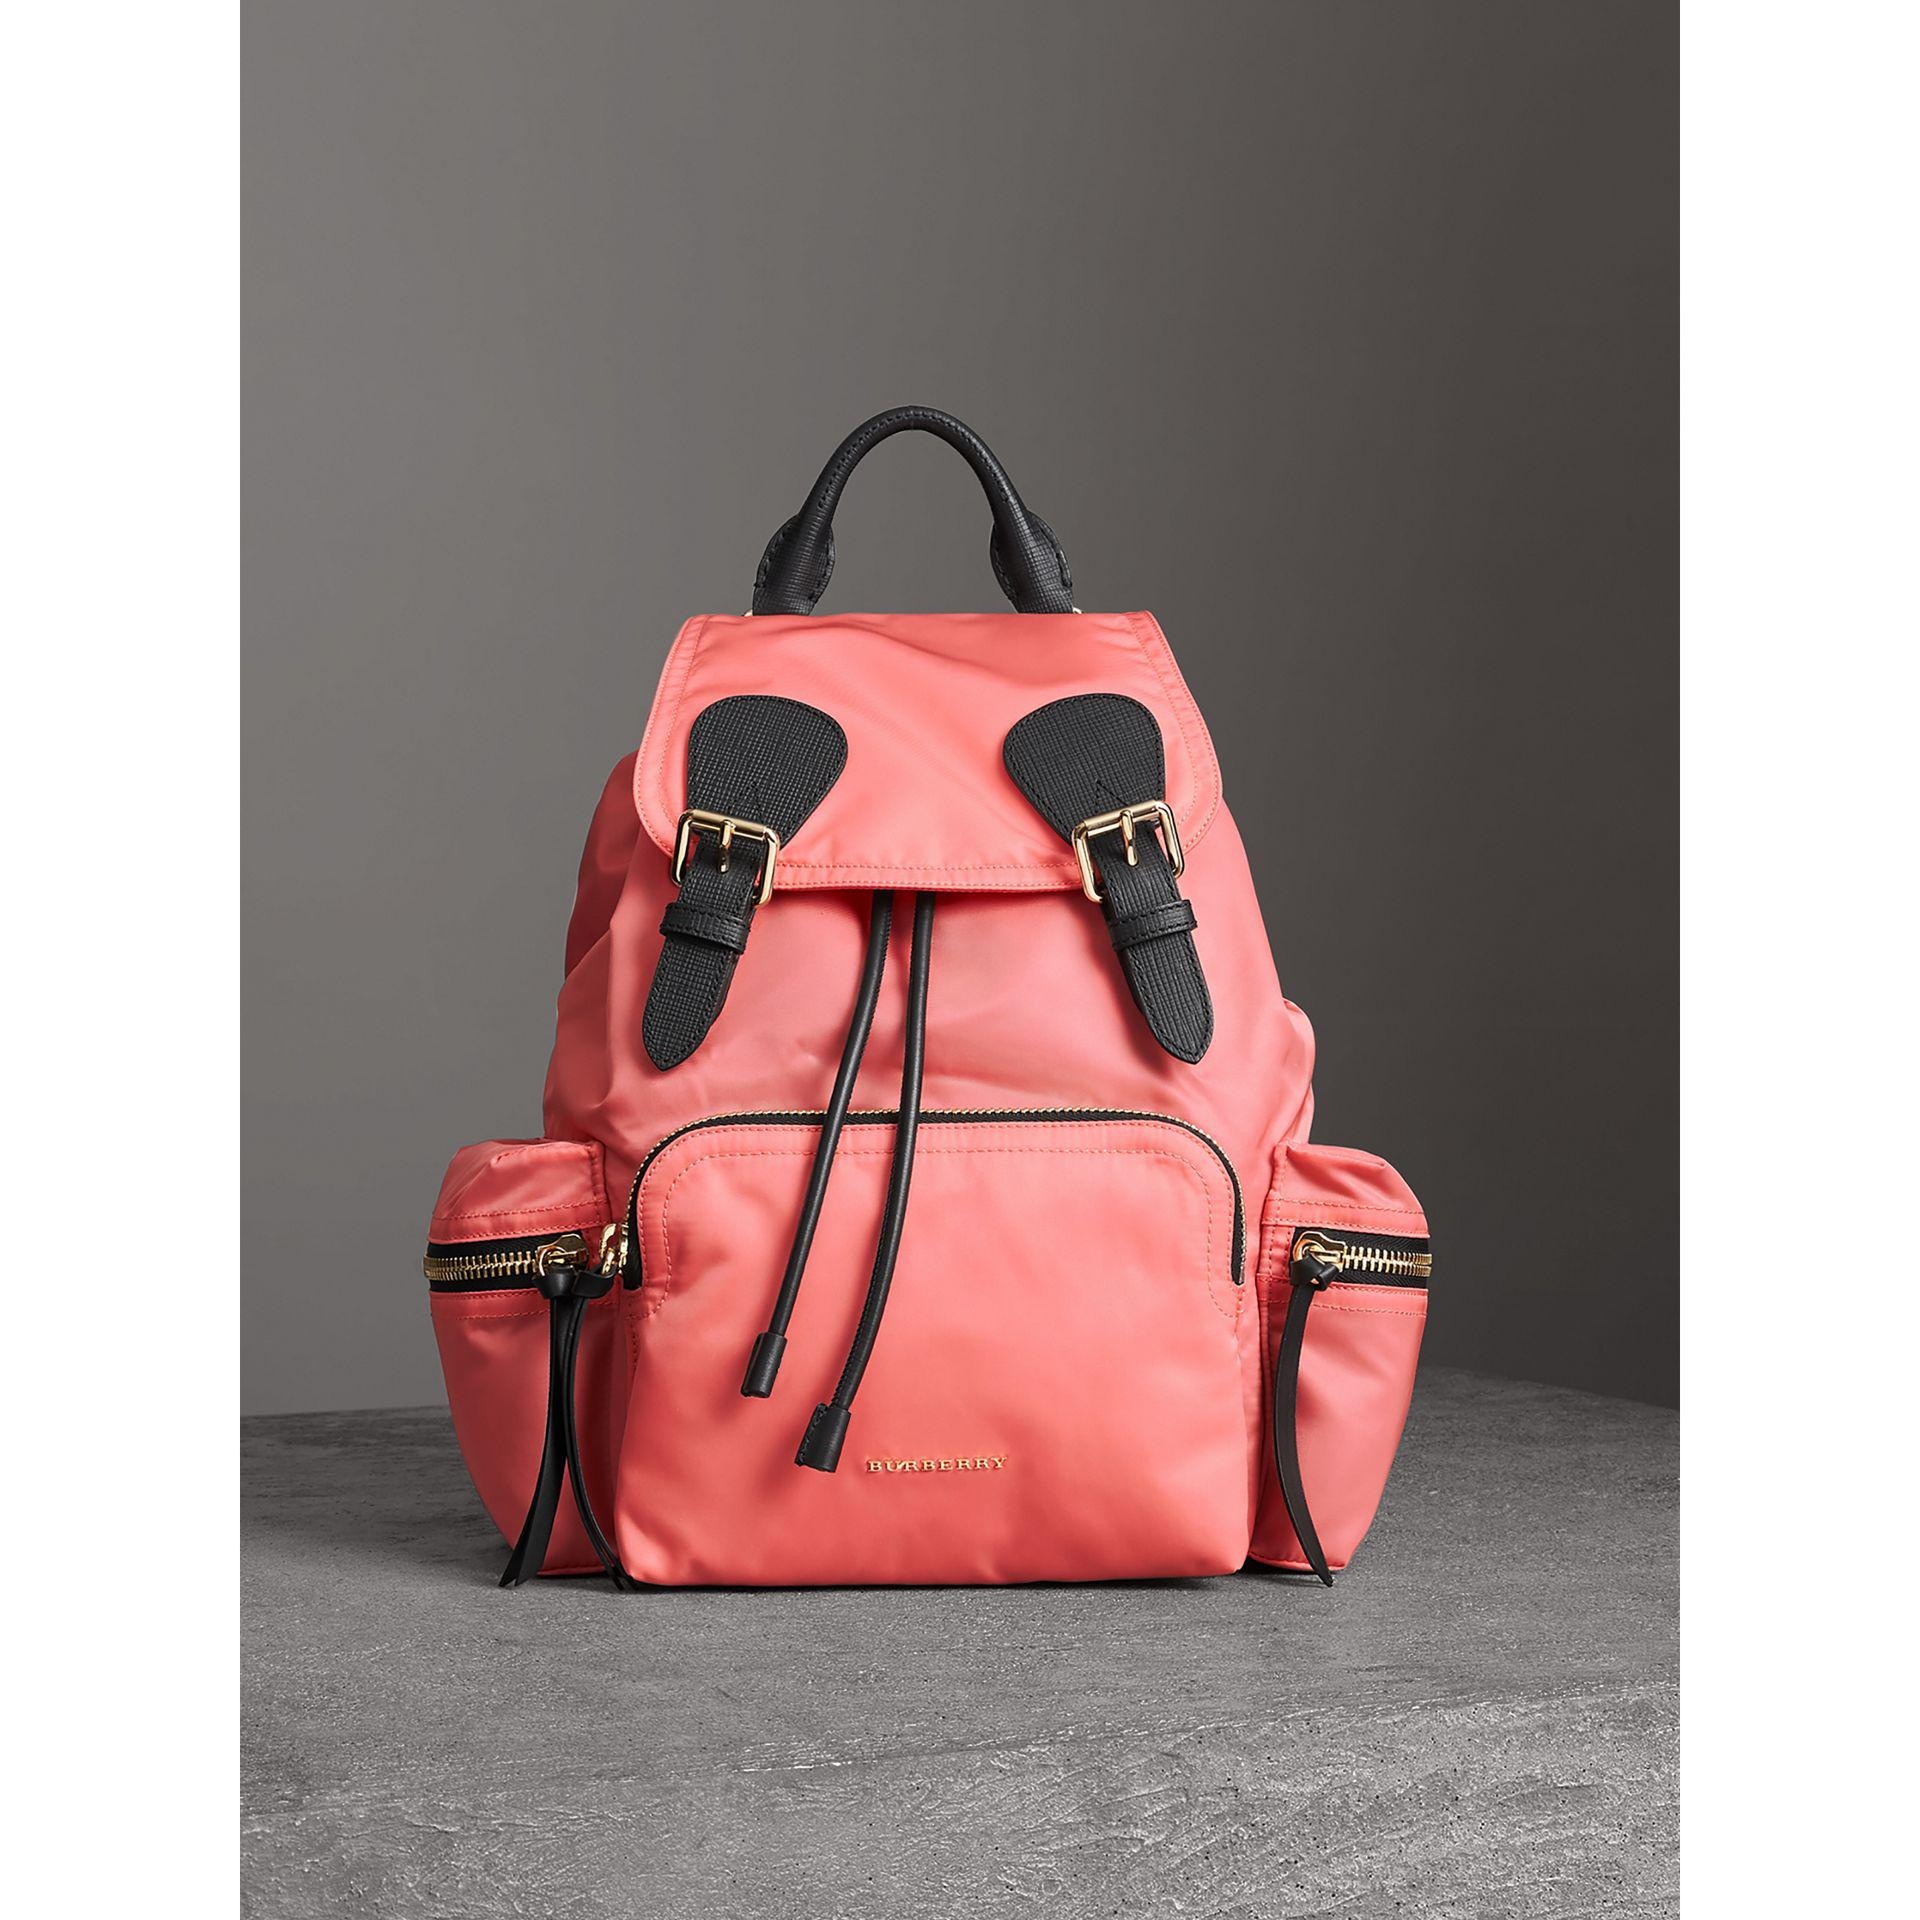 4b16e9807322 Lyst - Burberry The Rucksack Medium Backpack In Bright Coral Nylon ...